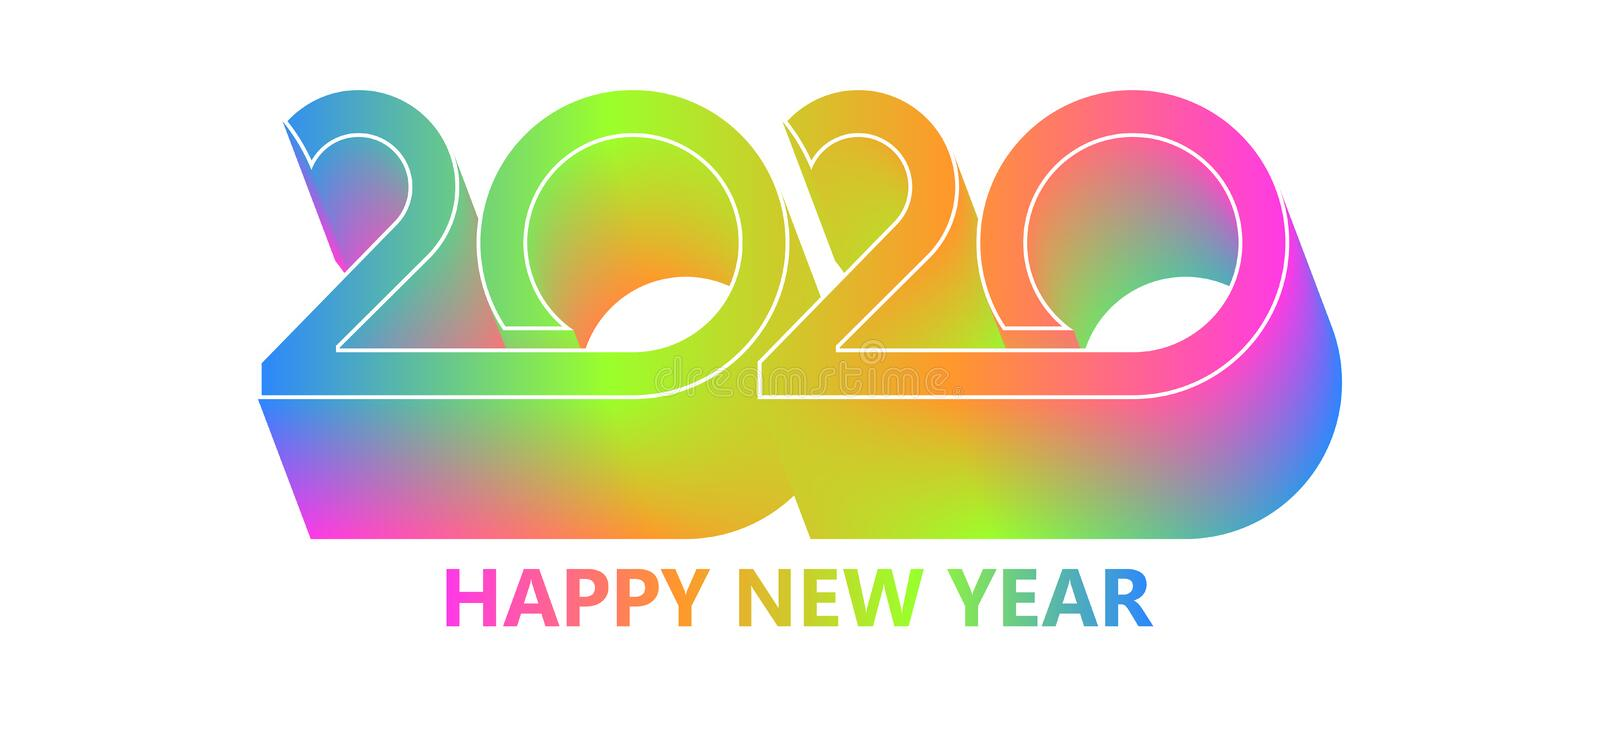 2020 Happy New Year background. Retro line design for typography, printing products, flyer, brochure covers or. Invitation cards. Vector illustration. EPS10 royalty free illustration